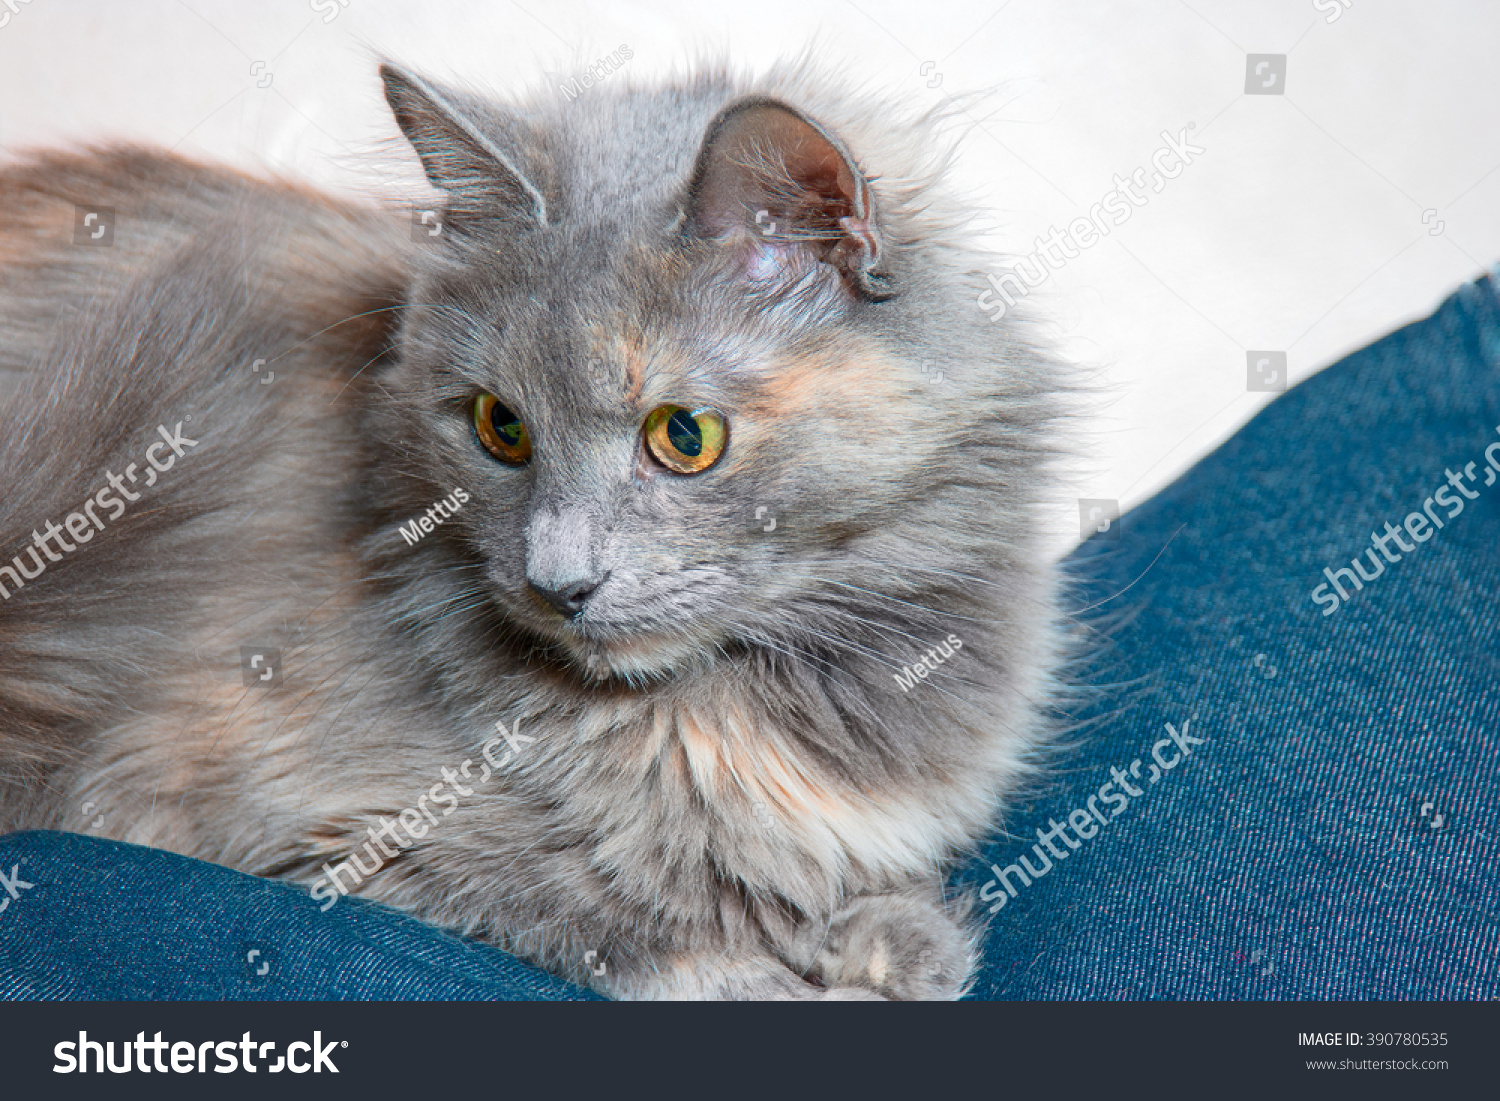 stock-photo-cute-gray-cat-is-sitting-on-